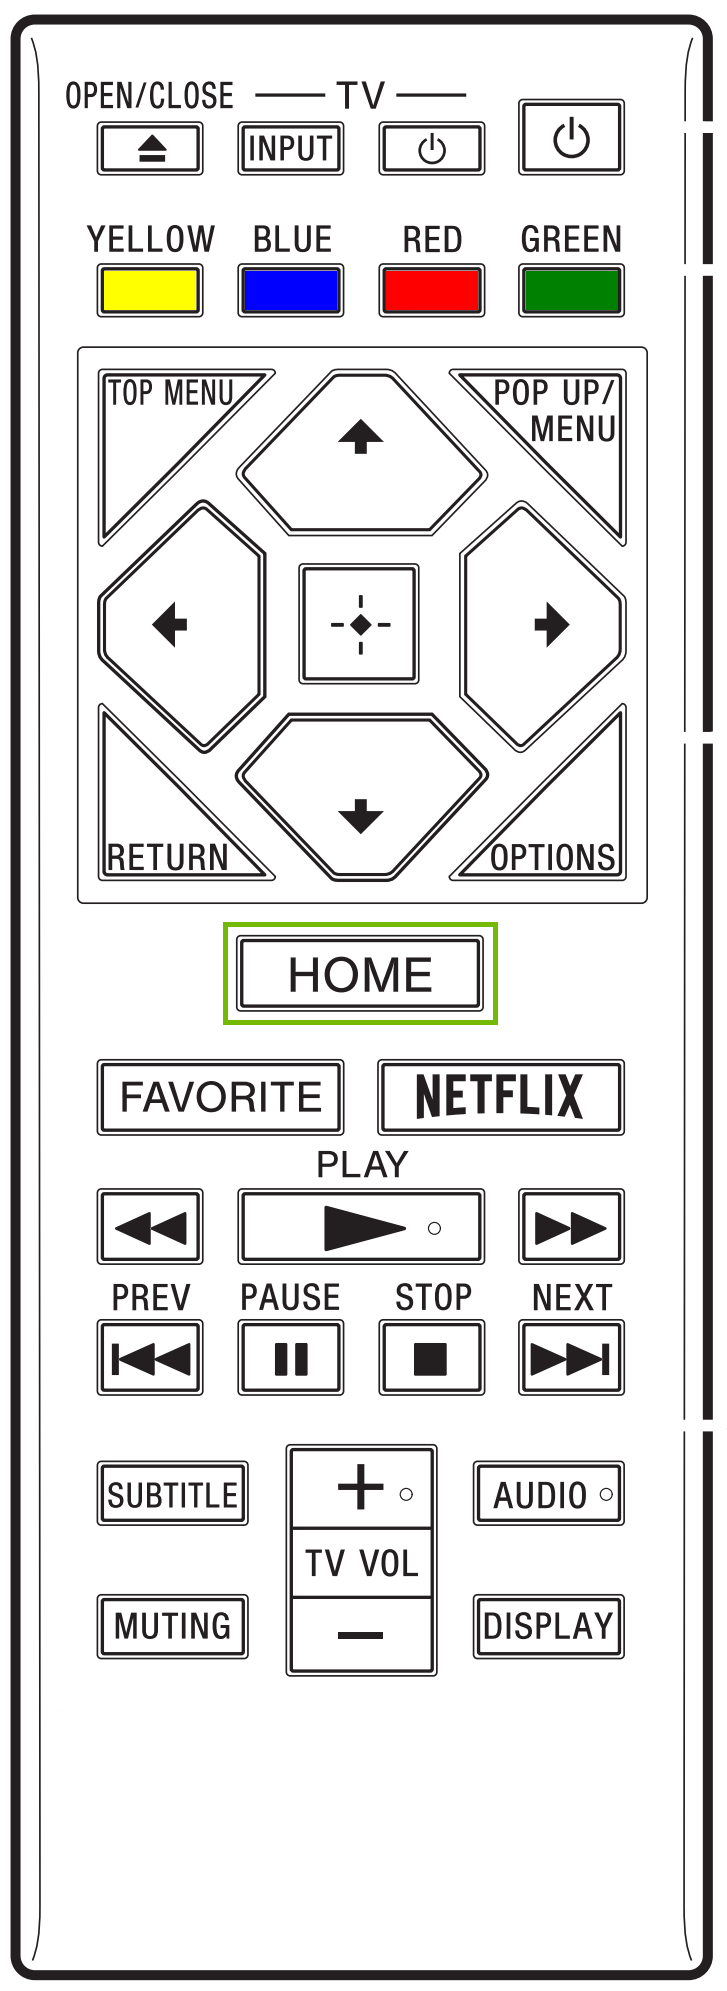 Remote with home button highlighted.